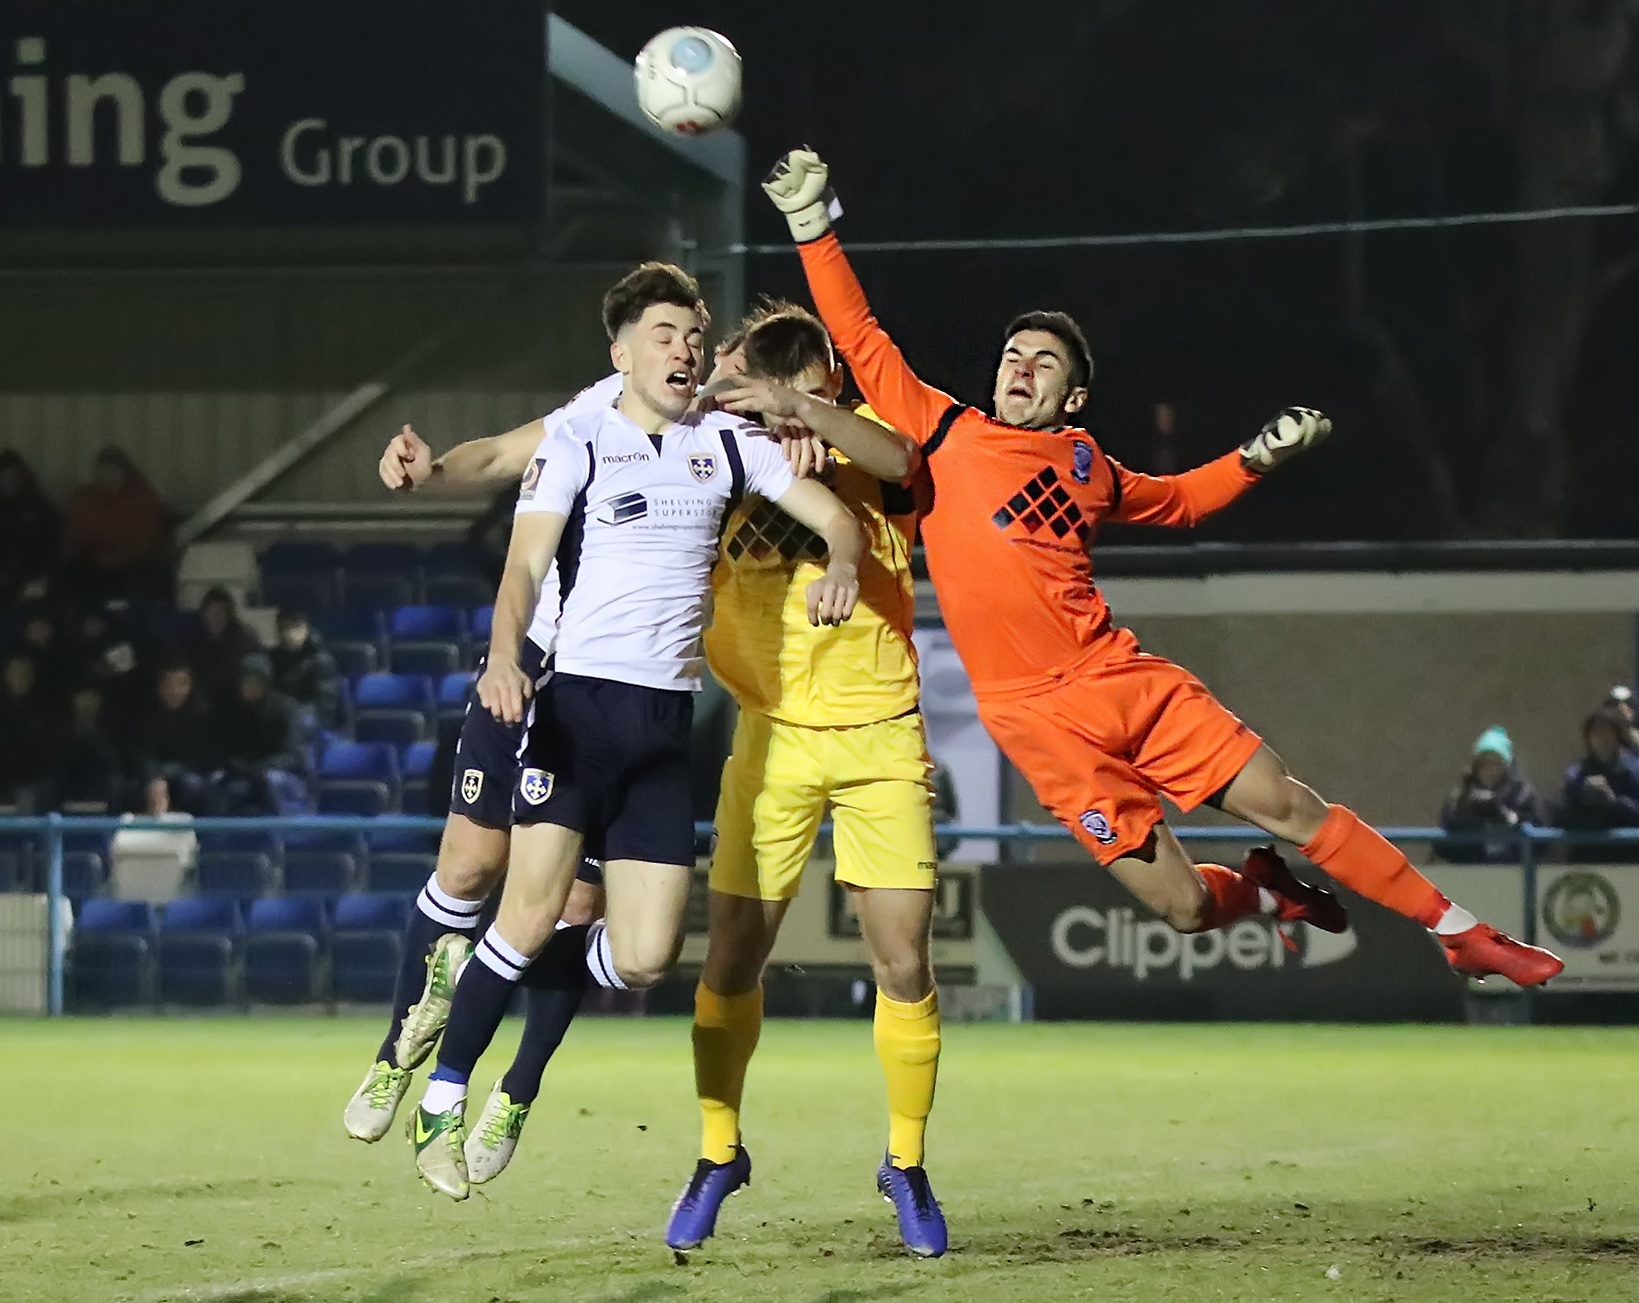 Guiseley midfielder George Cantrill, left, battles with Hereford goalkeeper Matt Yates during their 1-1 draw in the Vanarama National League North on Tuesday night. Picture: Alex Daniel Photography